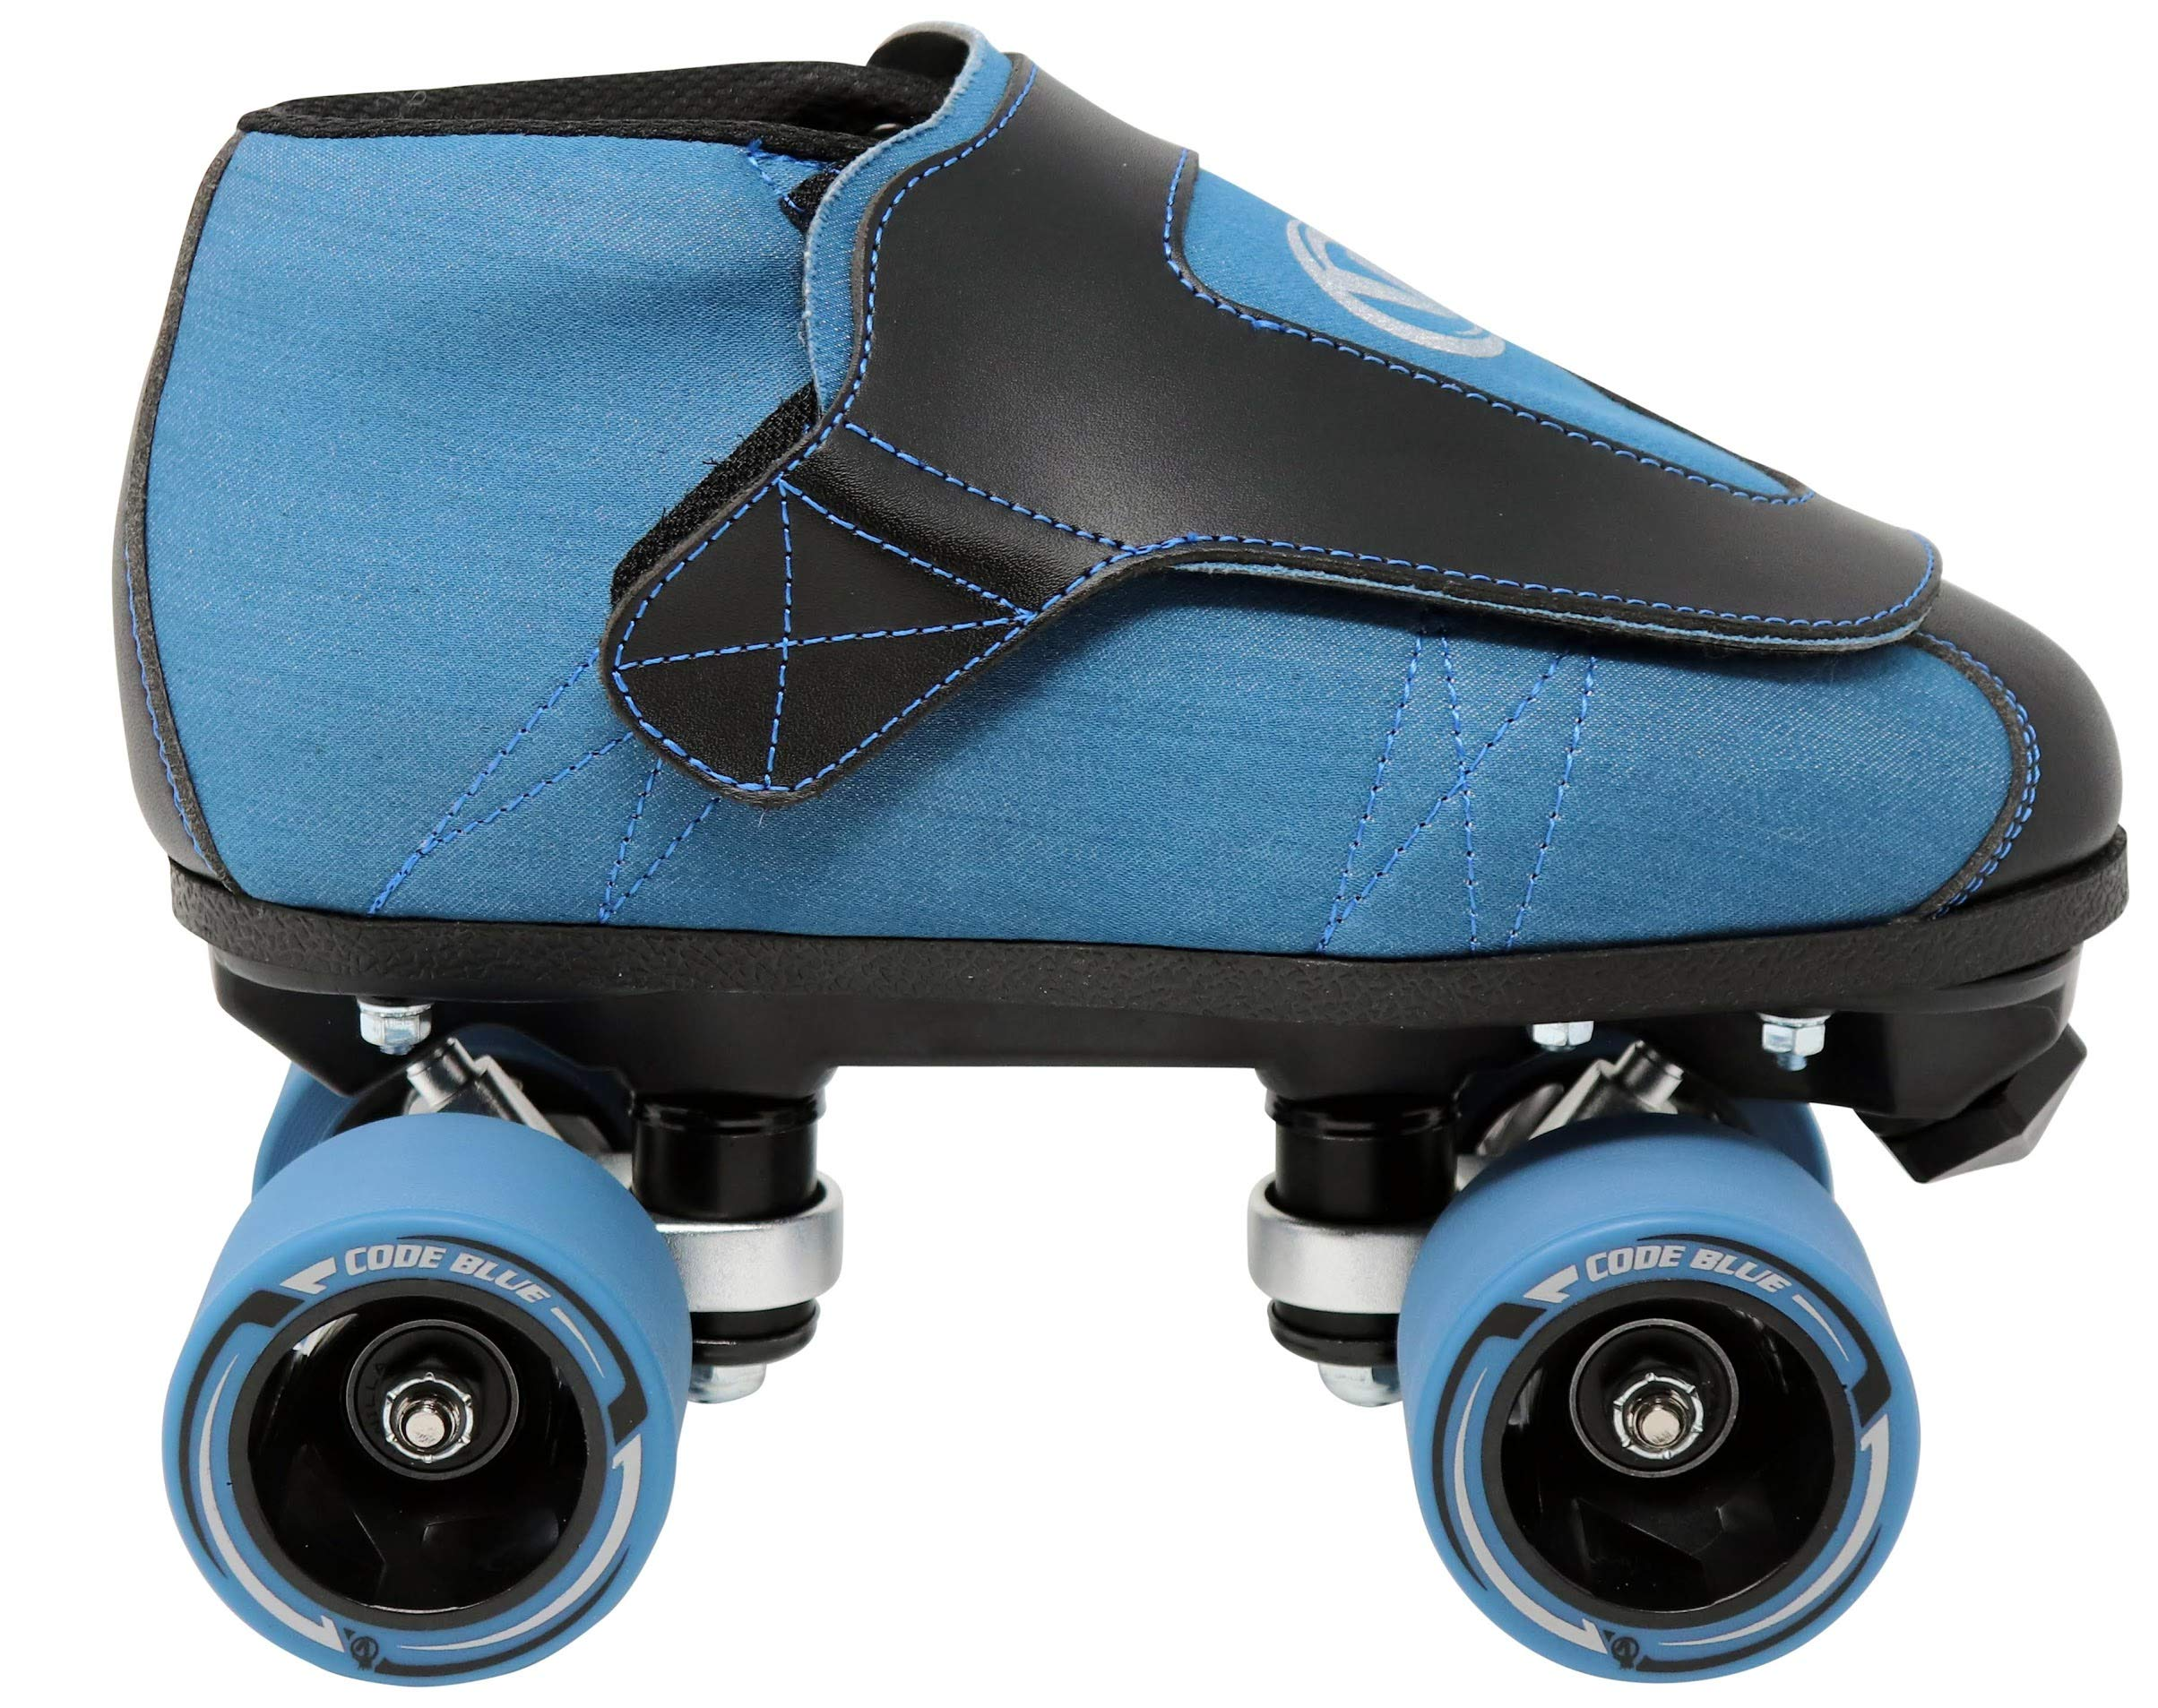 VNLA Code Blue Jam Skate - Mens & Womens Speed Skates - Quad Skates for Women & Men - Adjustable Roller Skate/Rollerskates - Outdoor & Indoor Adult Quad Skate - Kid/Kids Roller Skates (Size 10) by VNLA (Image #2)